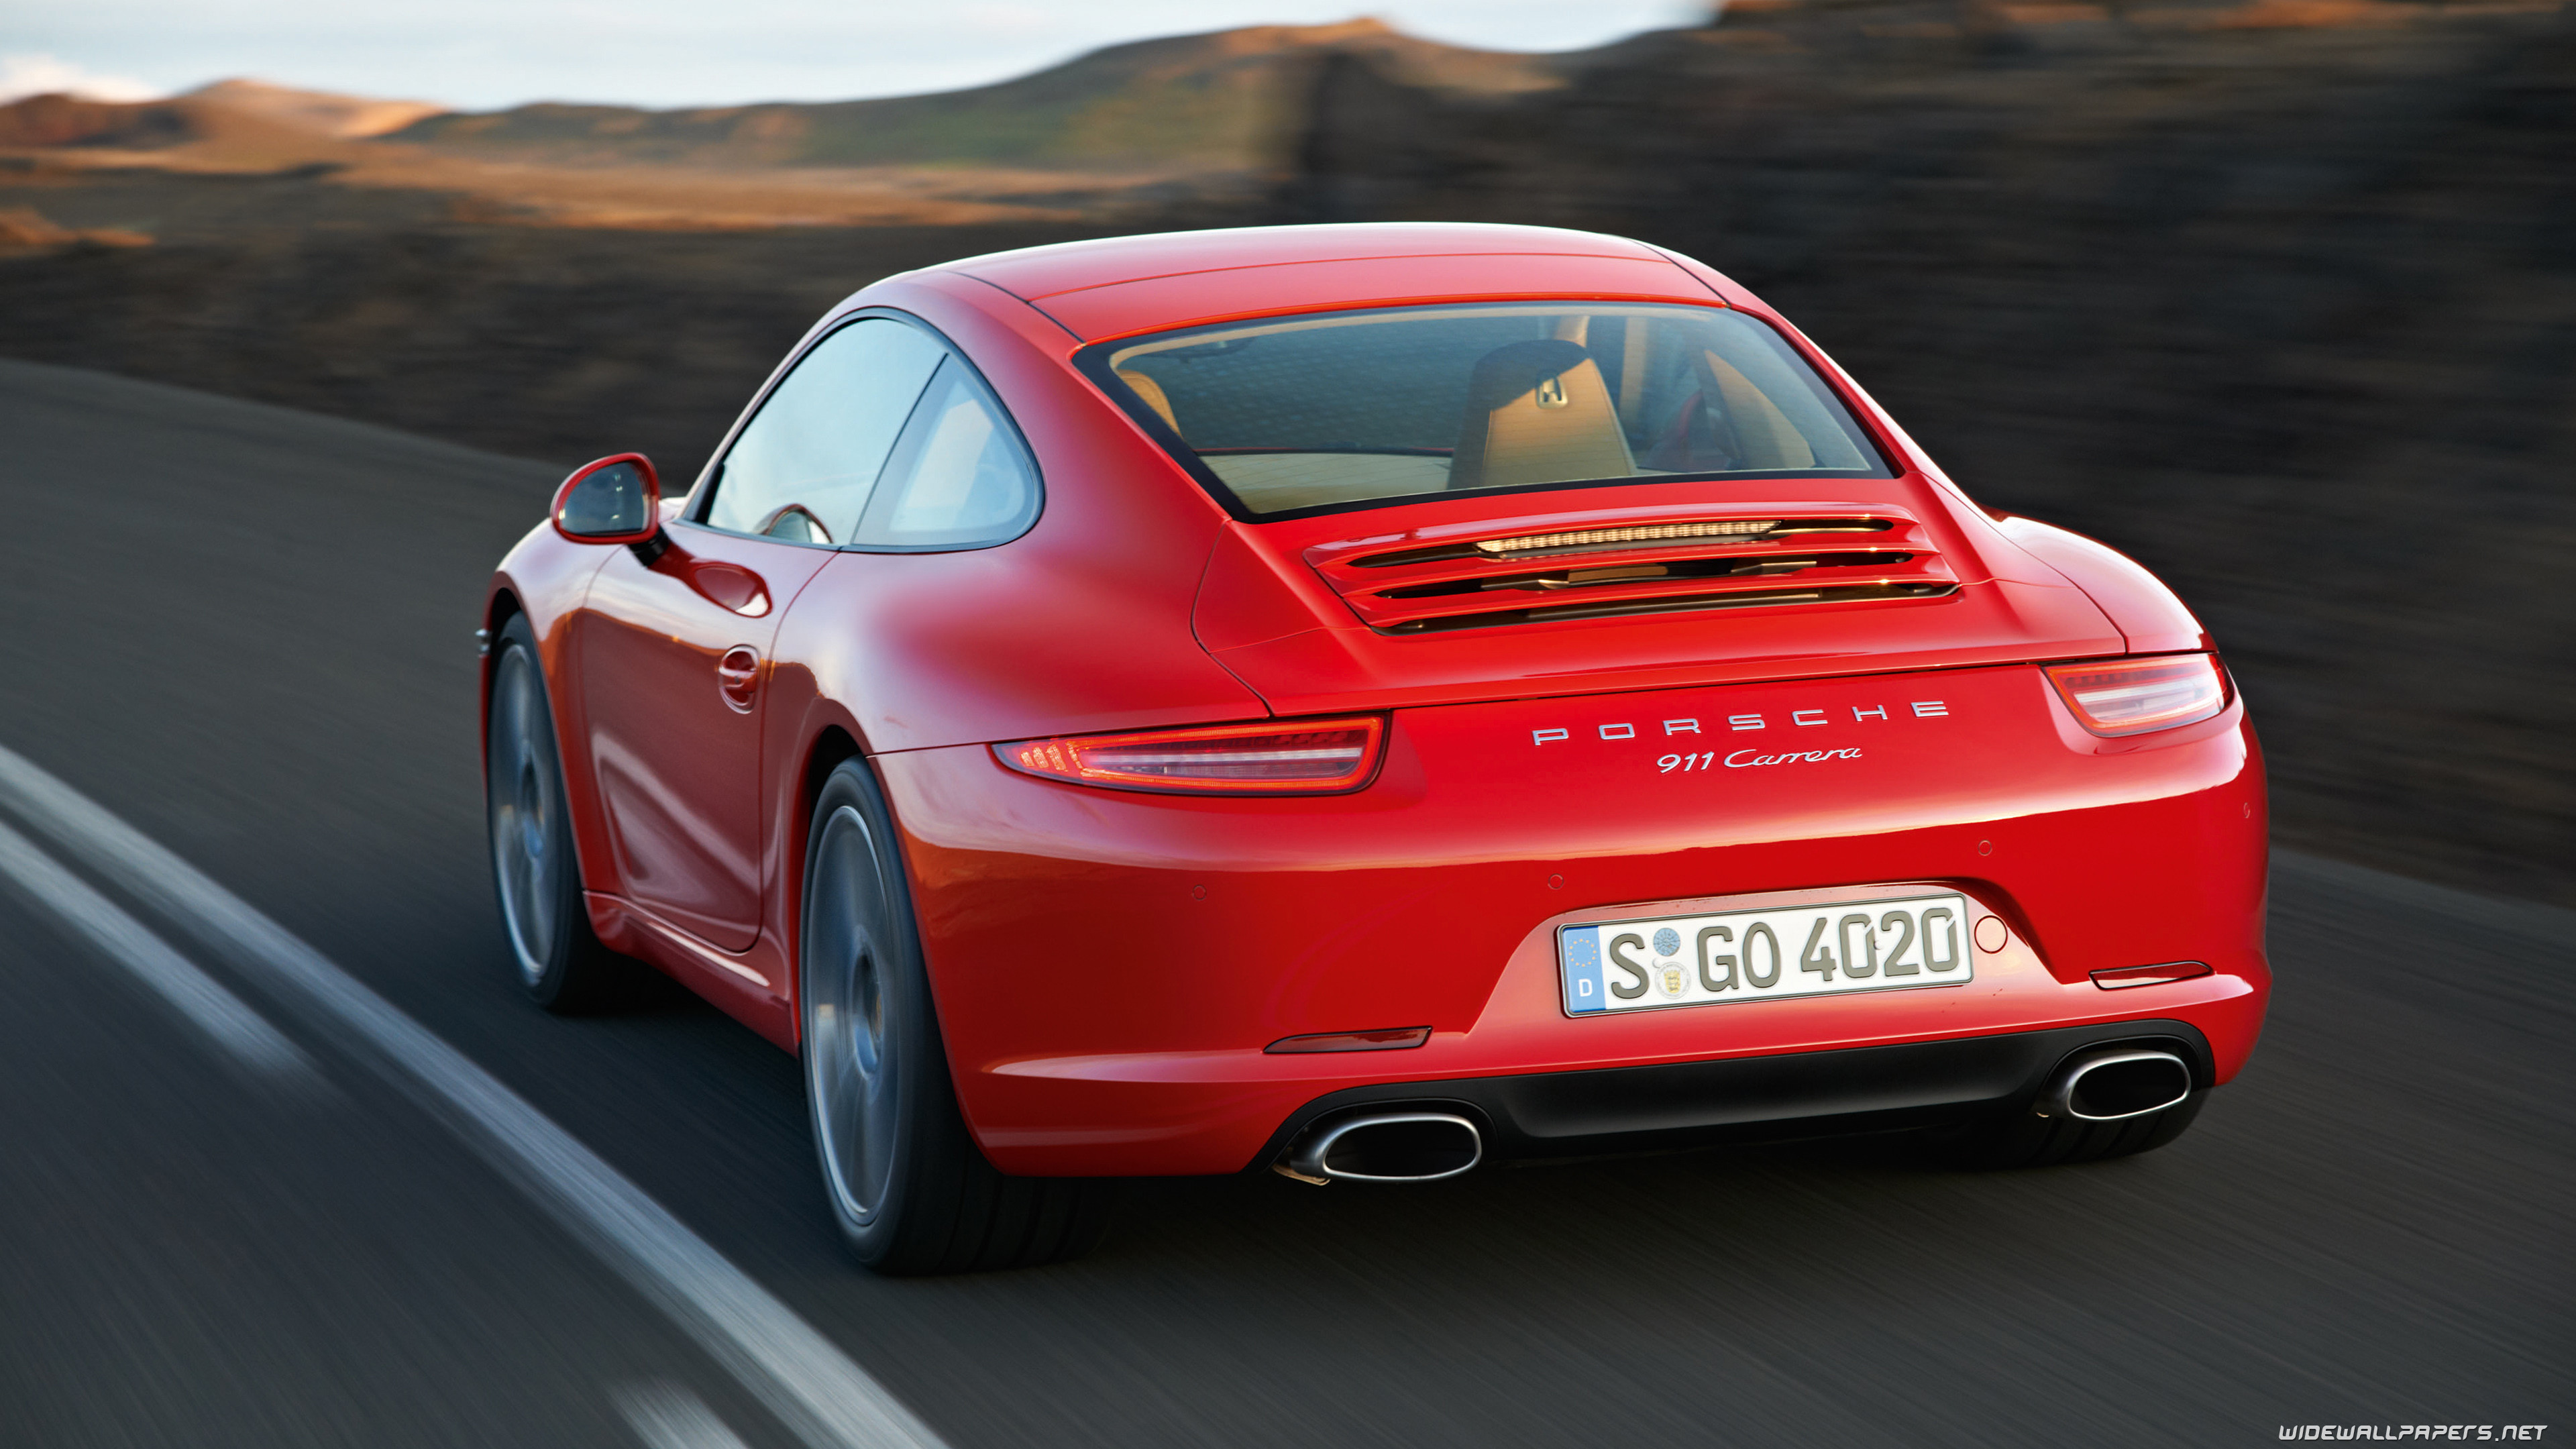 3840x2160 Porsche 911 Carrera S Coupe car wallpapers ...